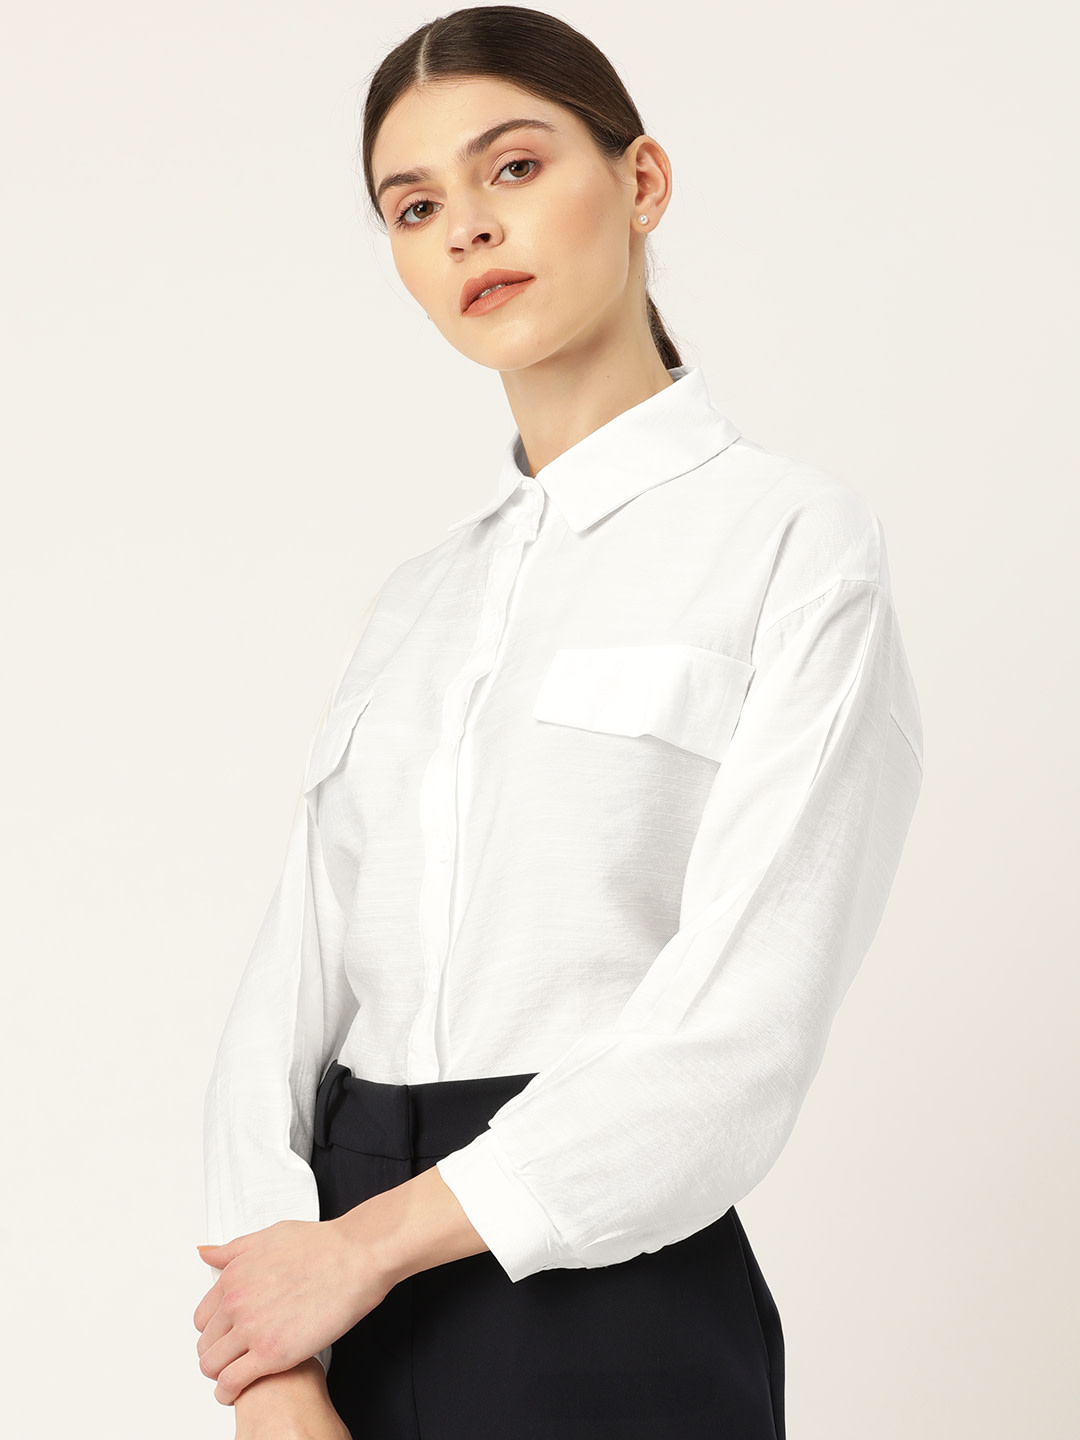 Tops-One Of A Kind White Shirt2